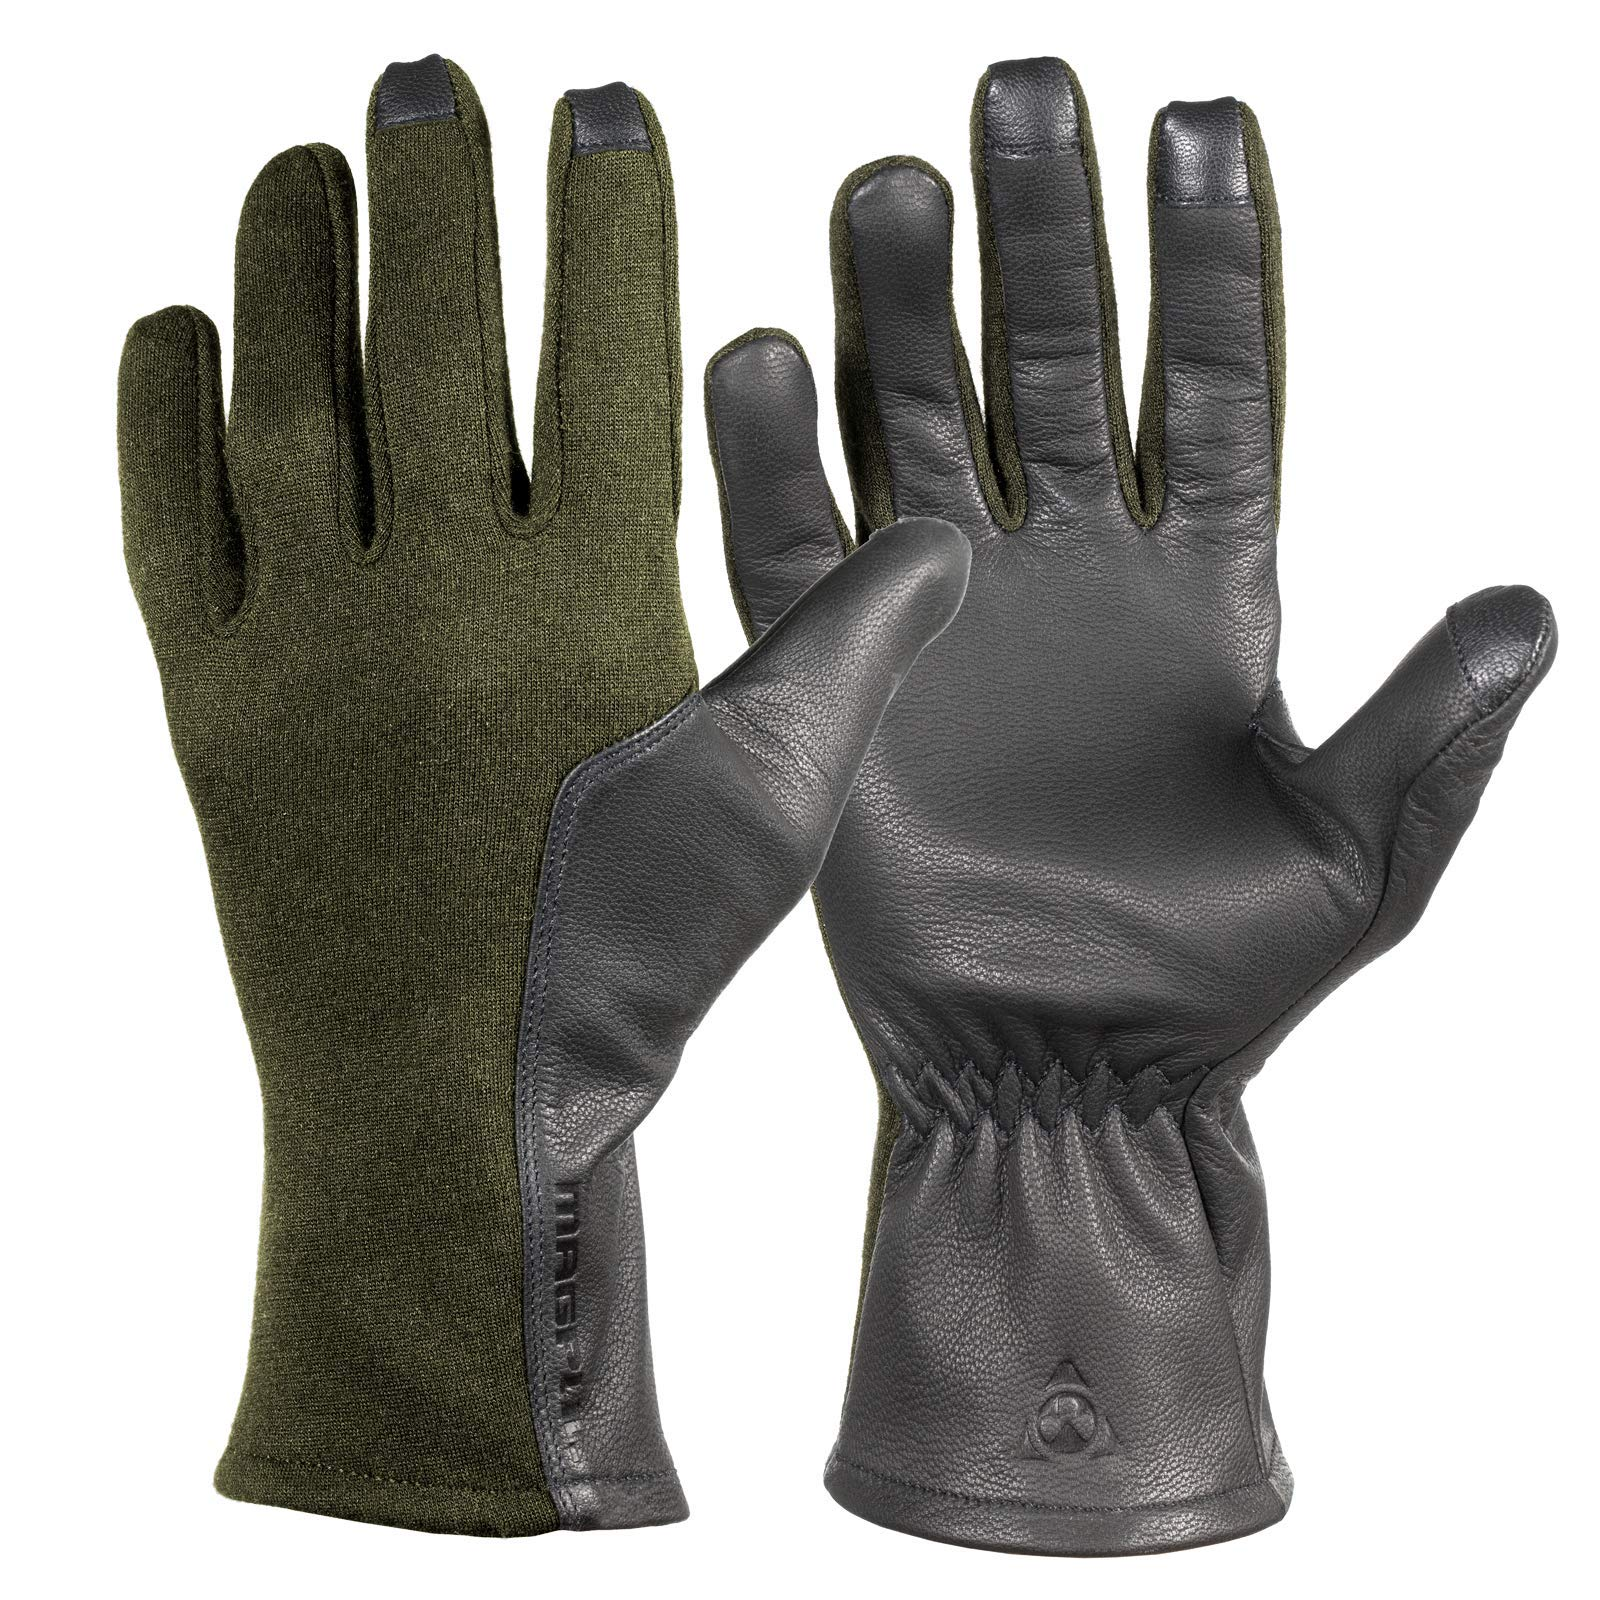 Magpul Core Flight Modern Nomex Gloves X-Large, Sage, X-Large by Magpul (Image #6)